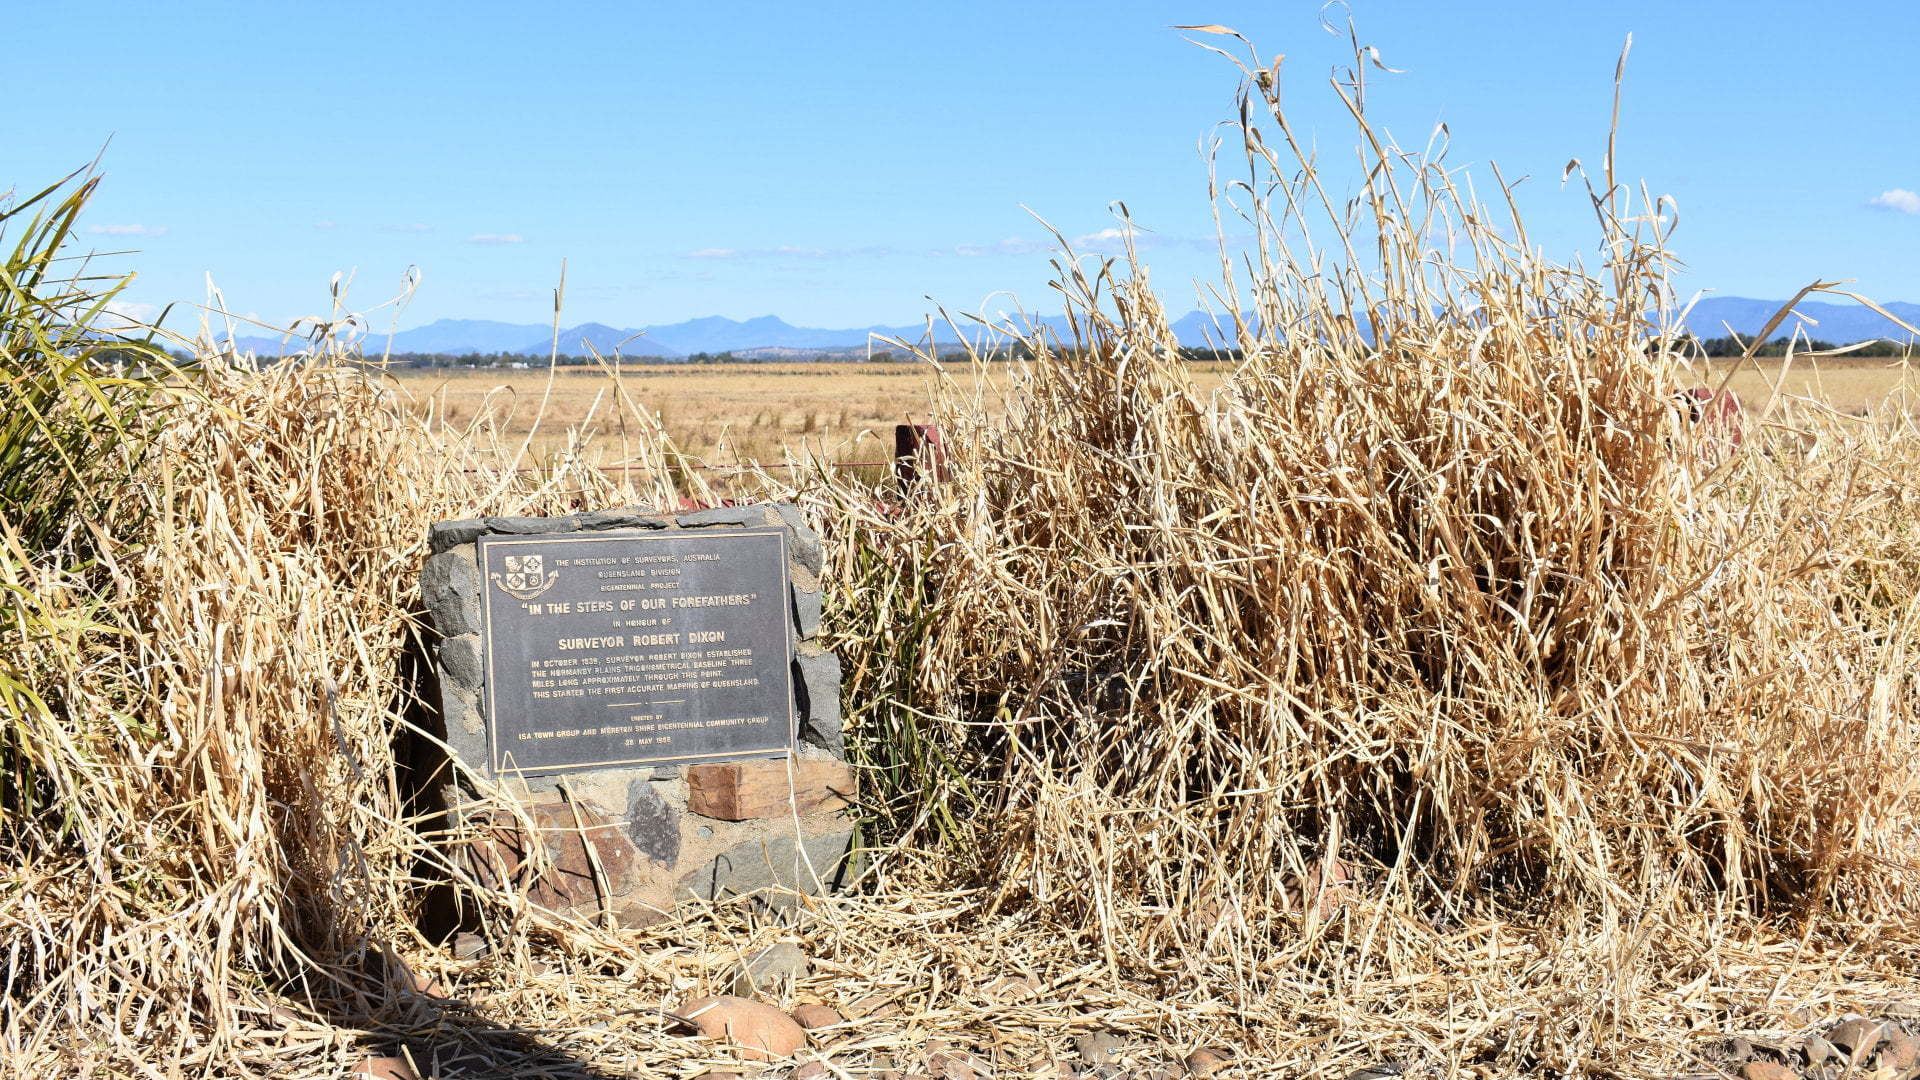 Historical Marker on the side of the road. The marker is in honour of surveyor Robert Dixon on the Normanby Plains Trigonometrical Baseline. The baseline was established in 1839 and started the accurate mapping of Queensland